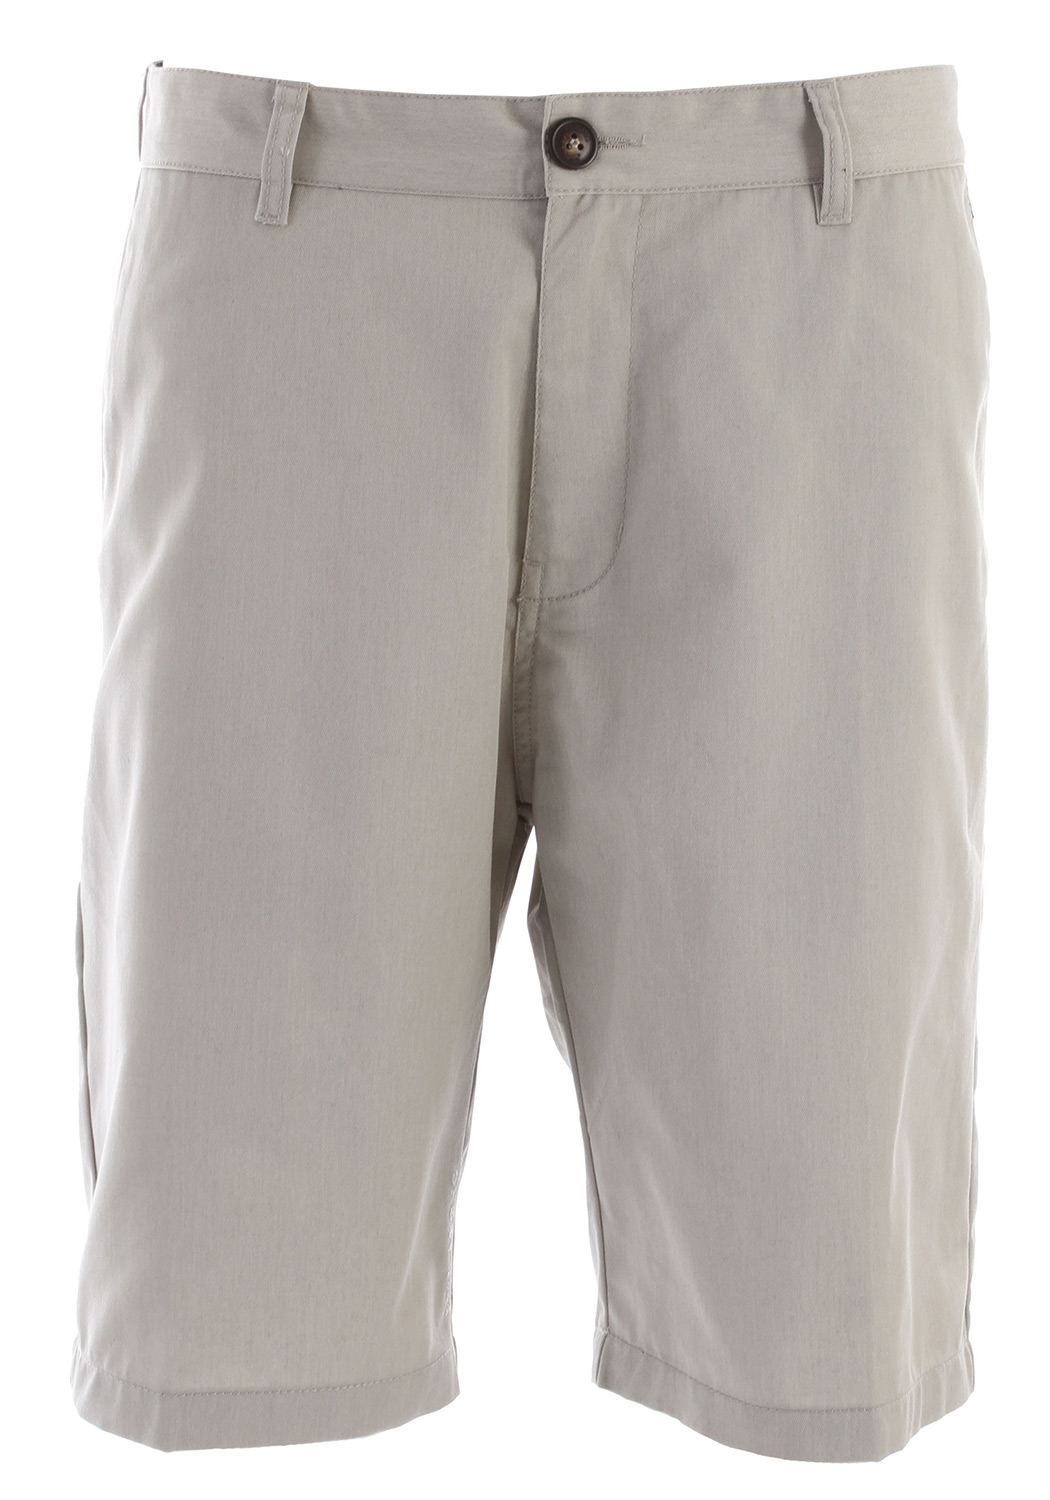 "Surf Key Features of the Billabong Carter Shorts: 22"" Core Fit Workwear chino styling Welt back pockets Sleek cell phone pocket at the side seam Woven work wear patch at the back hip 65% polyester/35% cotton - $29.95"